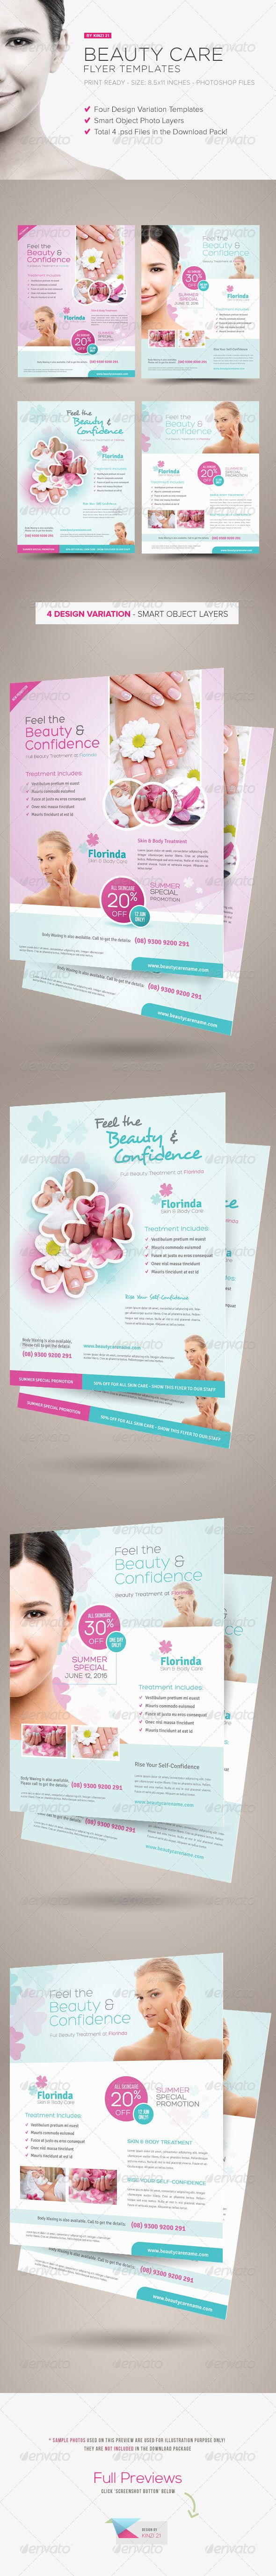 Beauty Care Flyer Templates - You can find the template source files here: http://graphicriver.net/item/beauty-care-flyer-templates/5086599?r=kinzi21